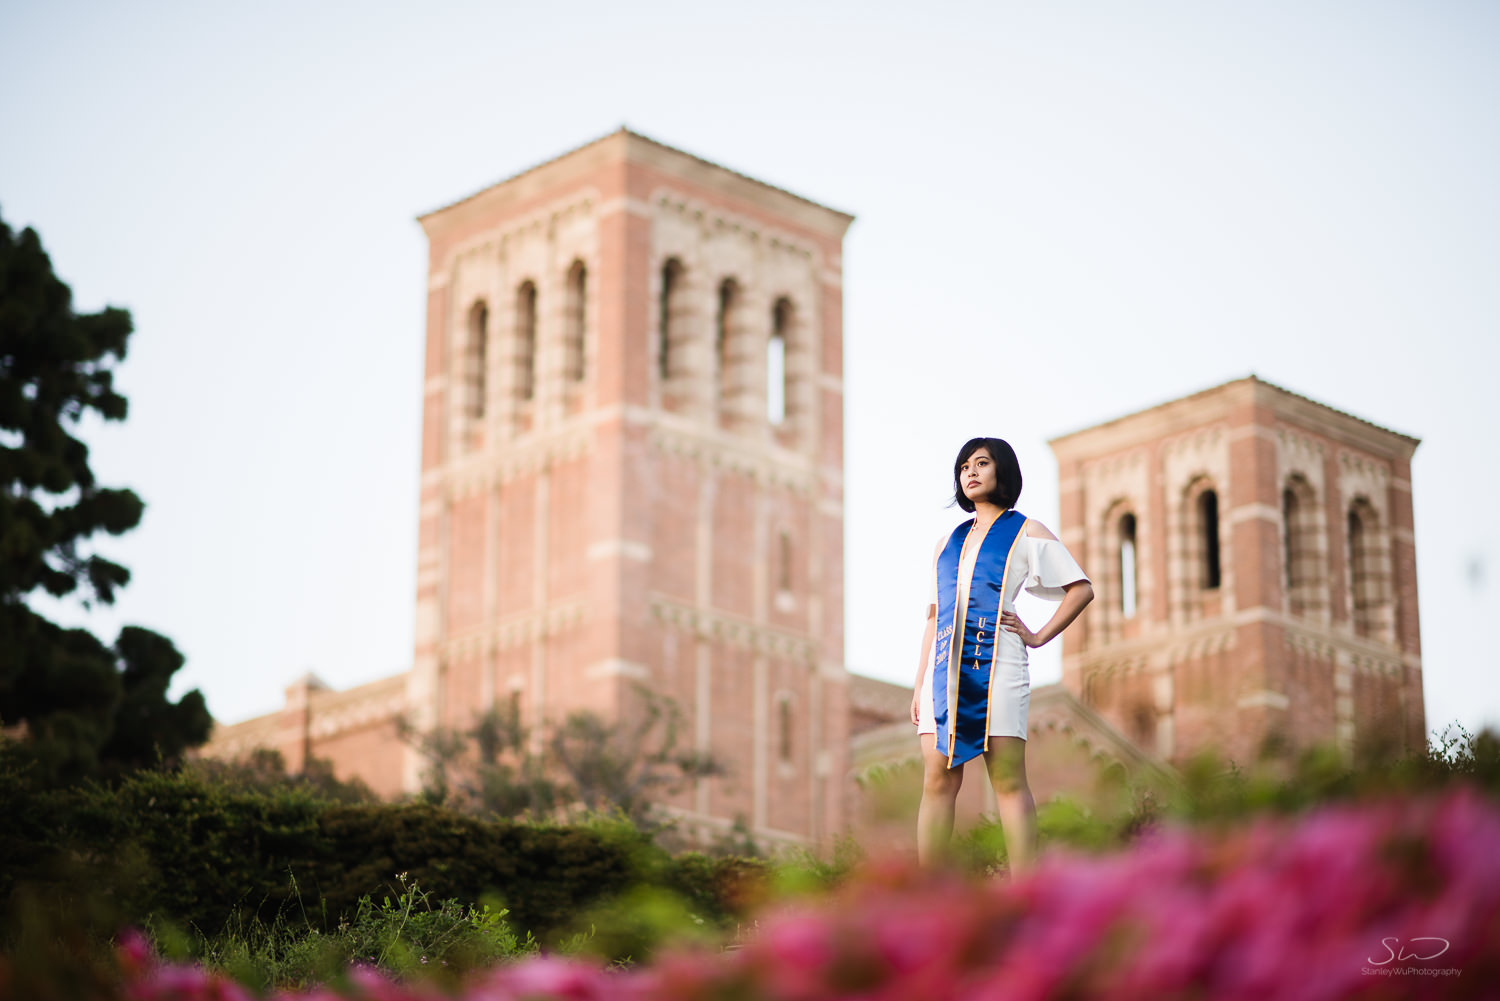 Copy of Copy of epic pose of a girl overlooking campus | Stanley Wu Photography | Los Angeles | Graduation Portraits | UCLA, USC, LMU, Pepperdine, CSULA, CSUN, CSULB, UCI, UCSD